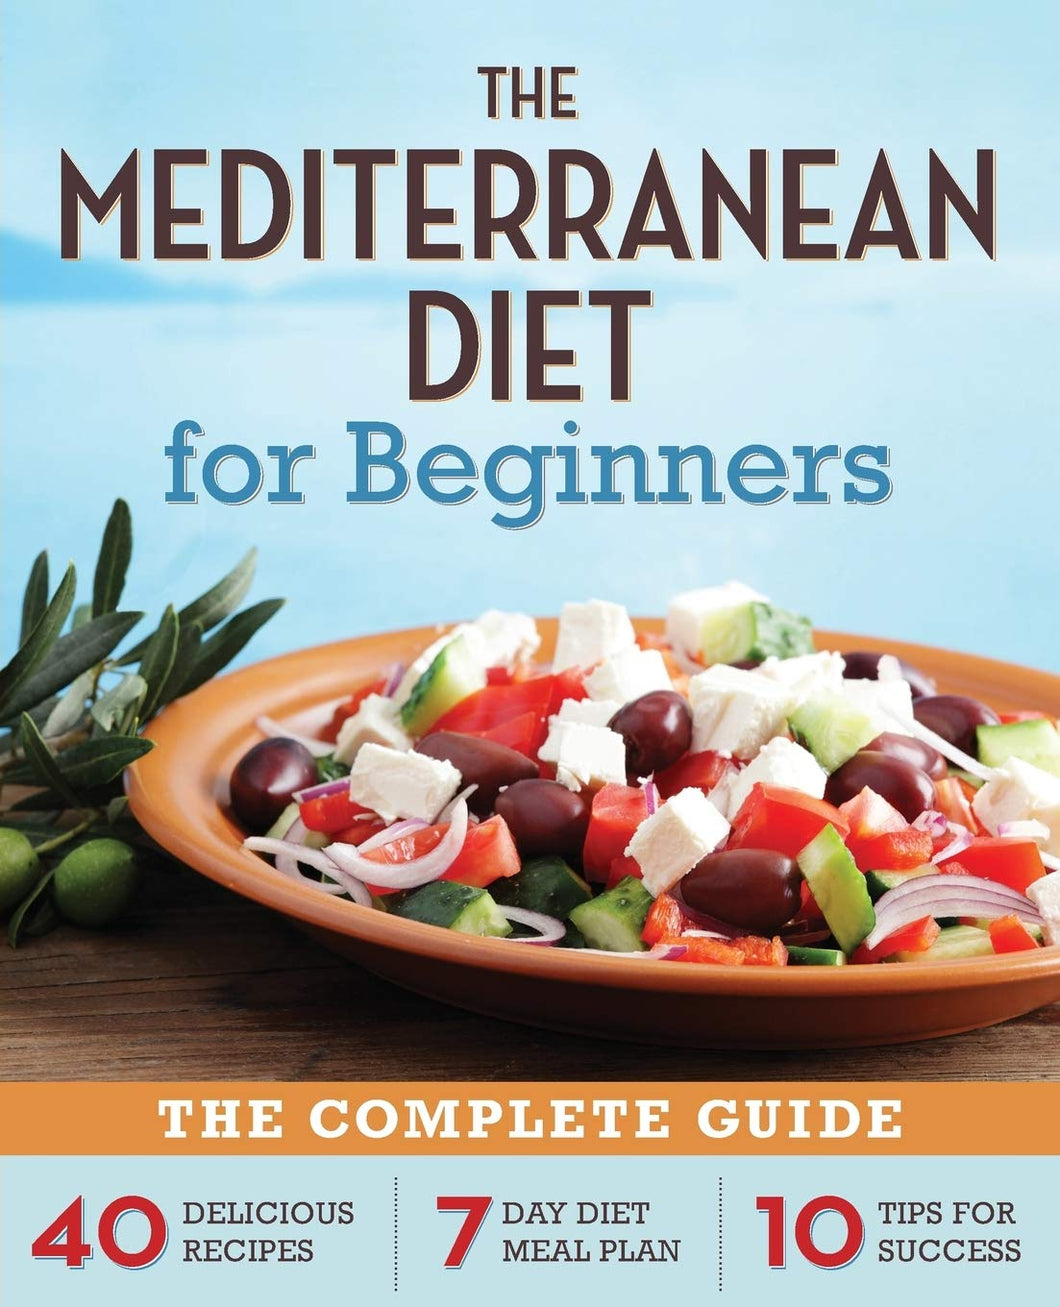 The Mediterranean Diet for Beginners: The Complete Guide - 40 Delicious Recipes, 7-Day Diet Meal Plan, and 10 Tips for Success - Tolerant Planet